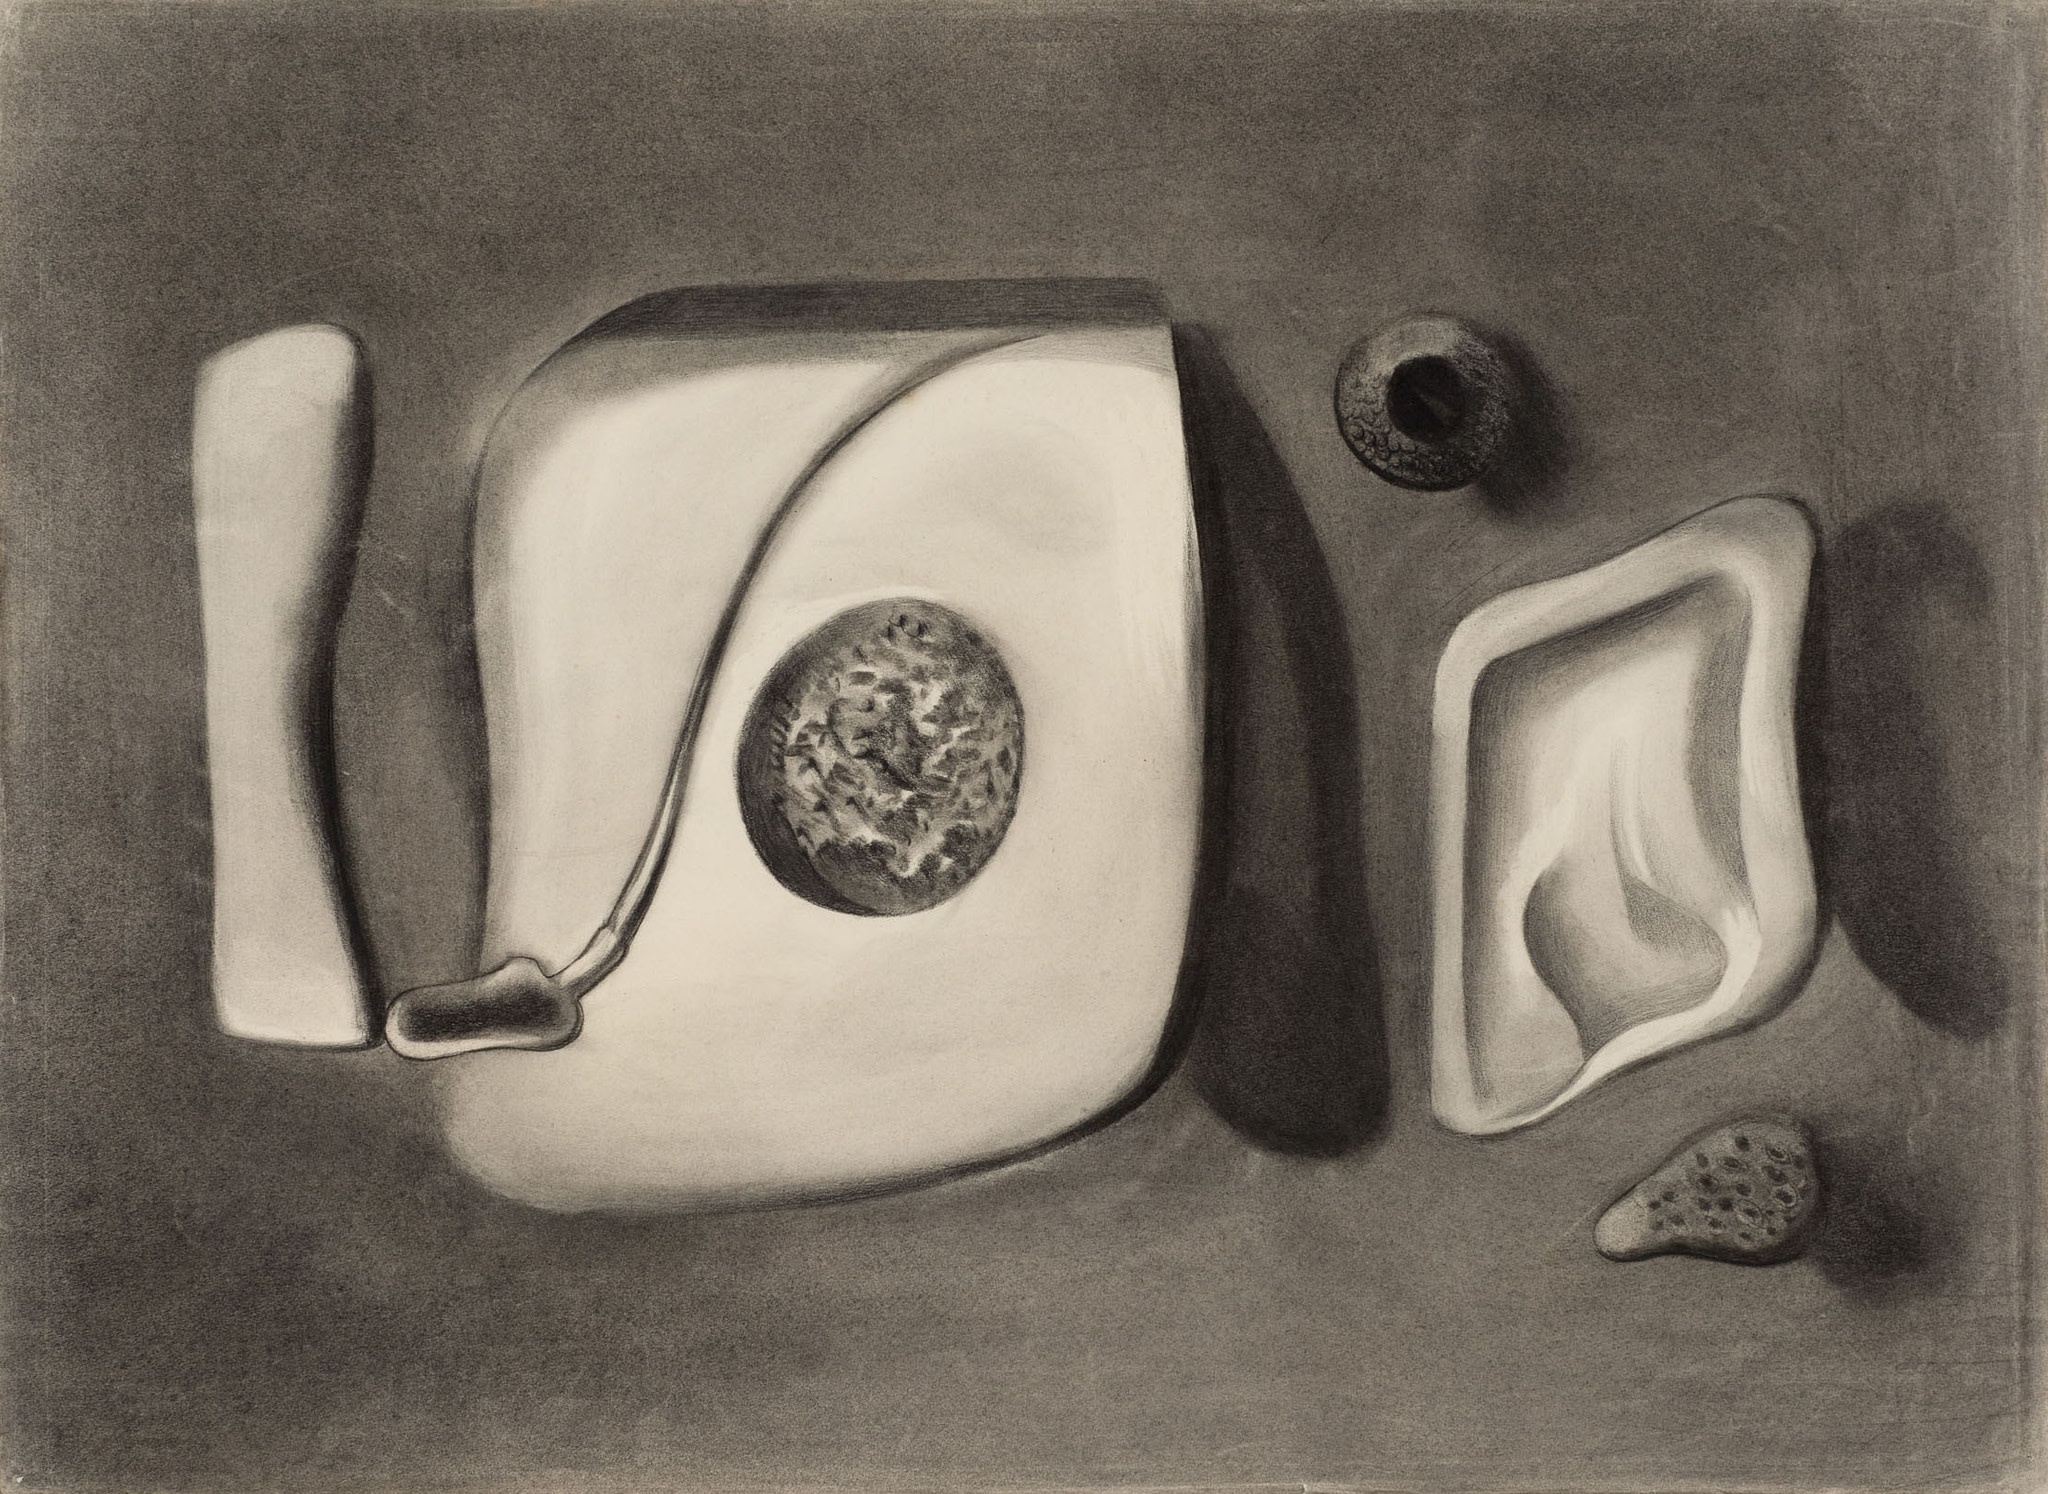 Merlyn Evans 1910 - 1973 Untitled, c.1934 charcoal on paper 30 x 22 in / 76.2 x 55.9 cm